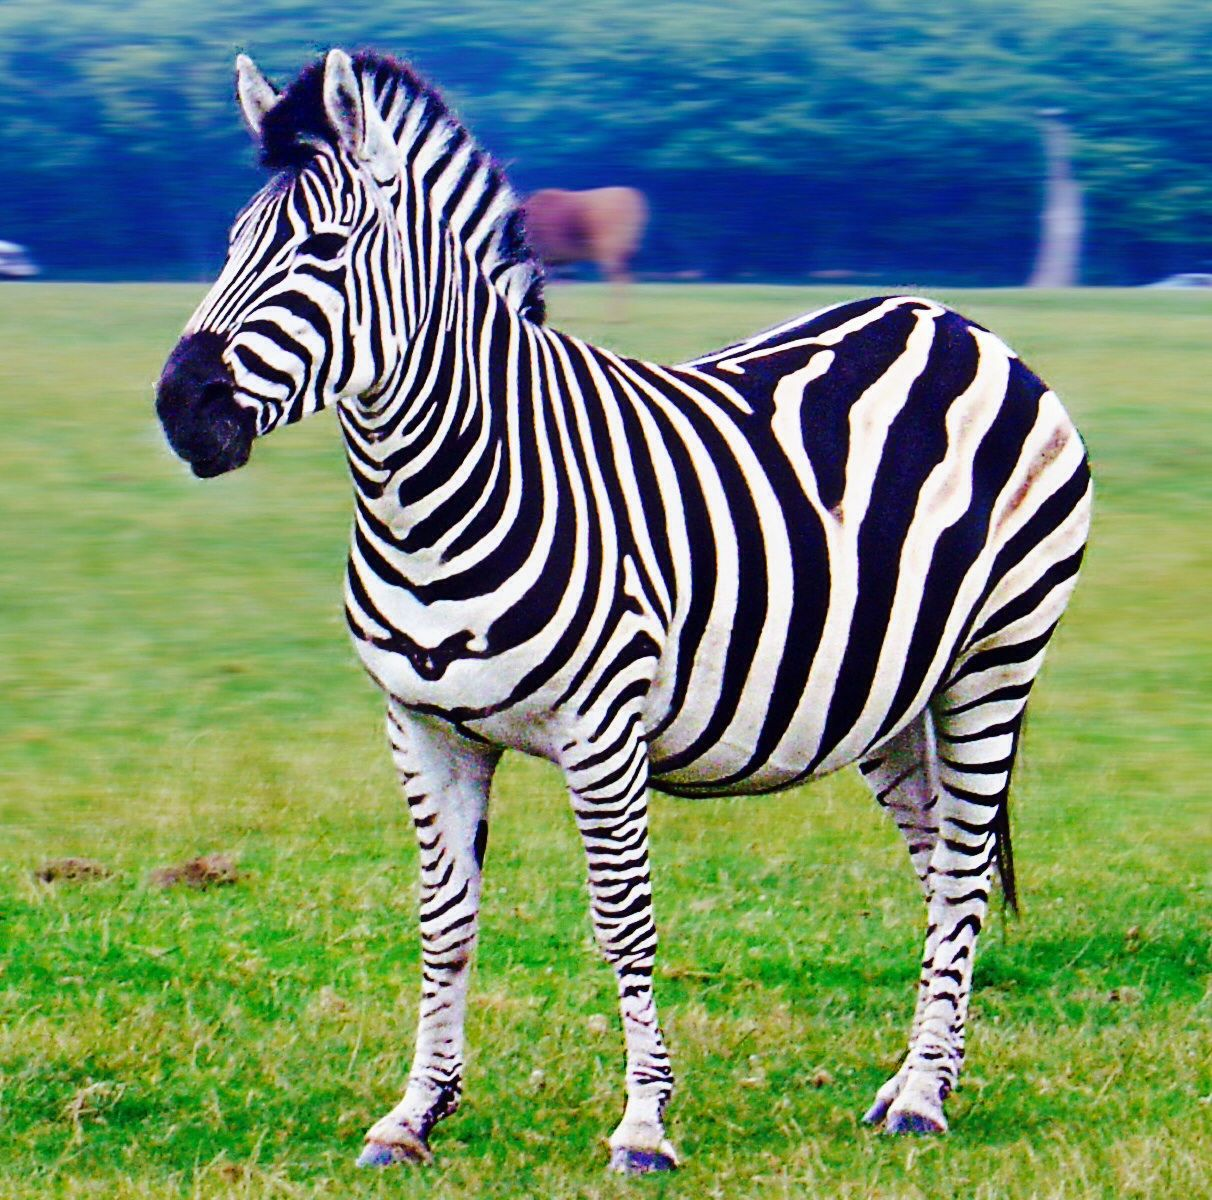 There are three different species of Zebra that are found